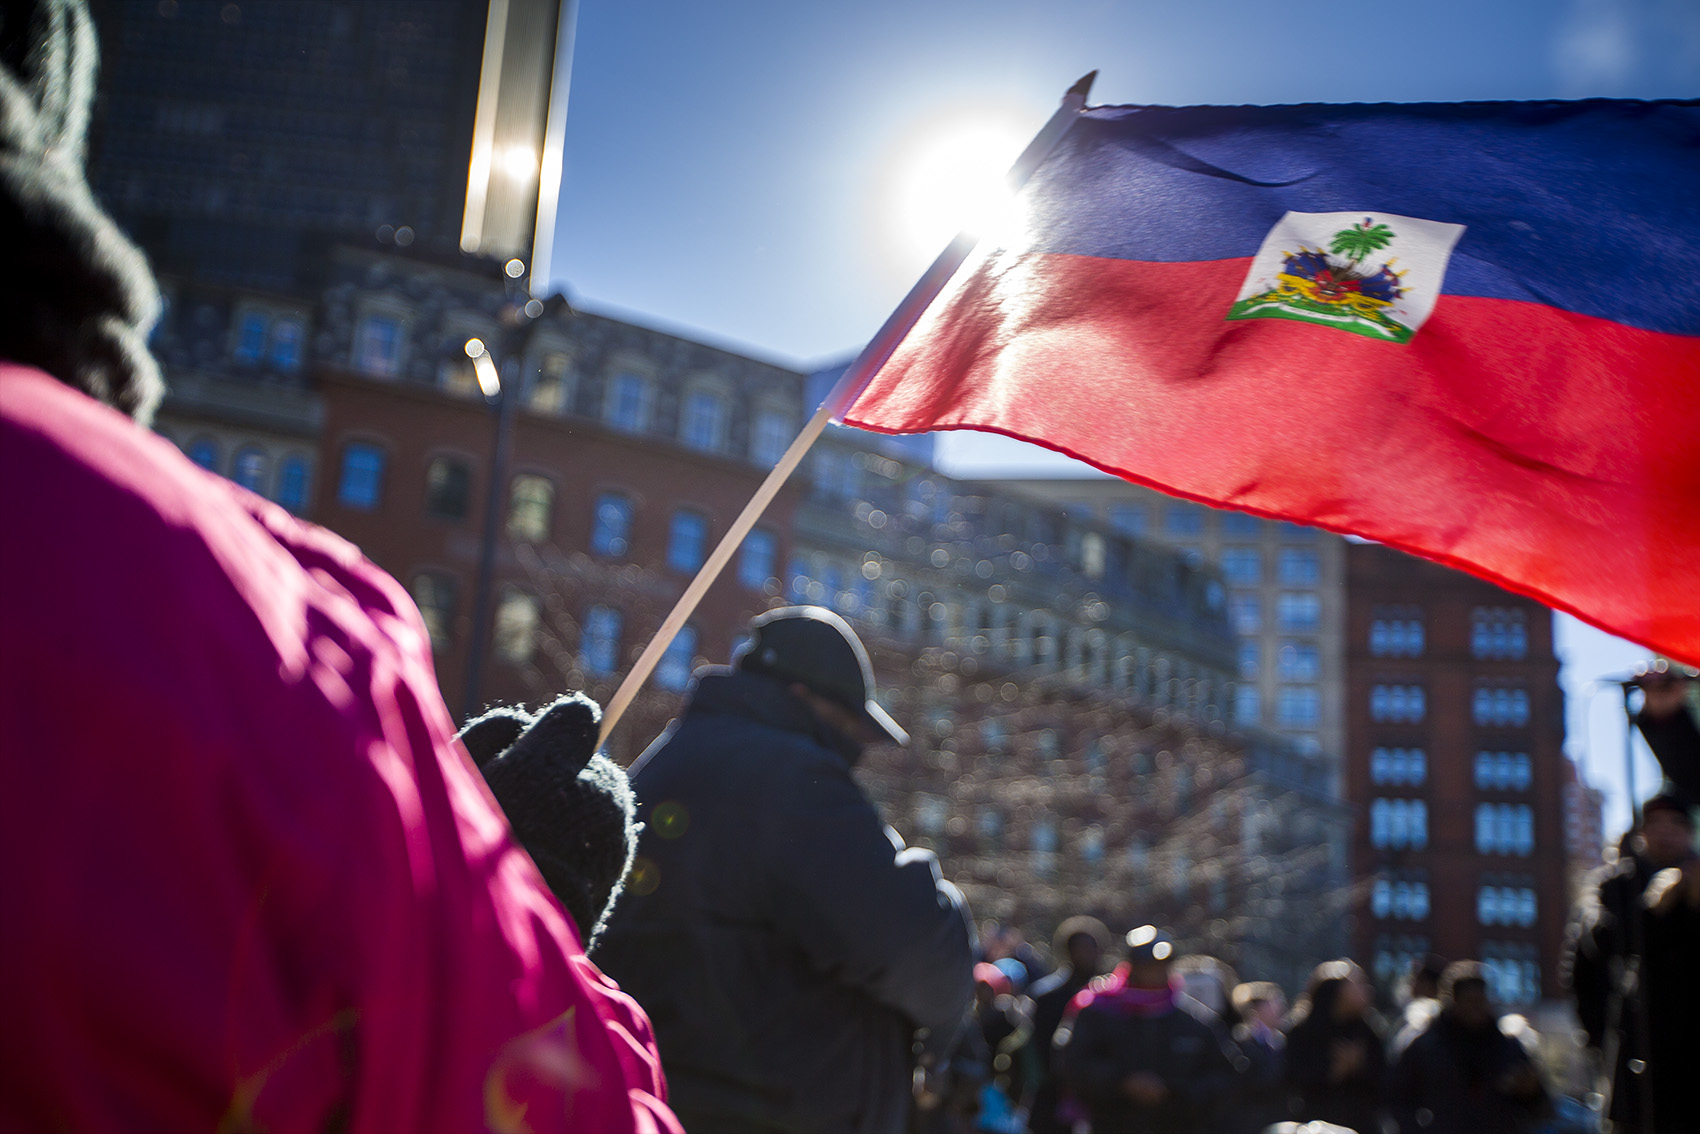 A woman waves a Haitian flag during a rally Friday at Boston City Hall denouncing the Trump administration's decision to cancel the Temporary Protected Status program for Haitians and President Trump's alleged insulting remarks about Haiti. (Jesse Costa/WBUR)